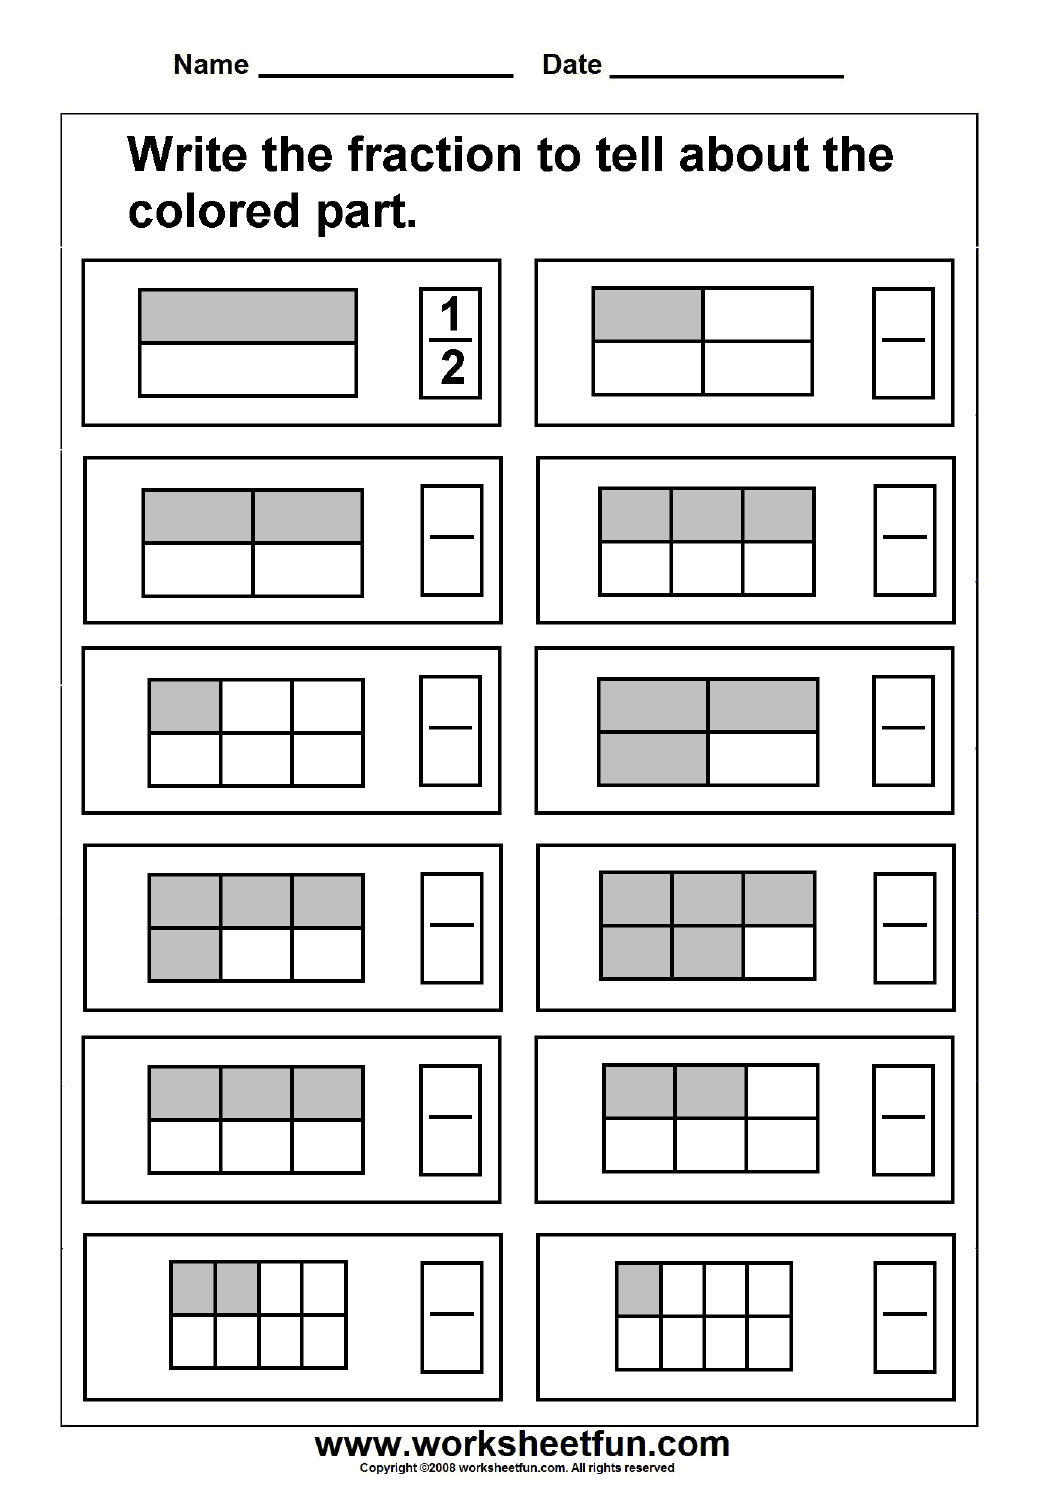 Worksheets Fraction Worksheet fraction model free printable worksheets worksheetfun 3 worksheets